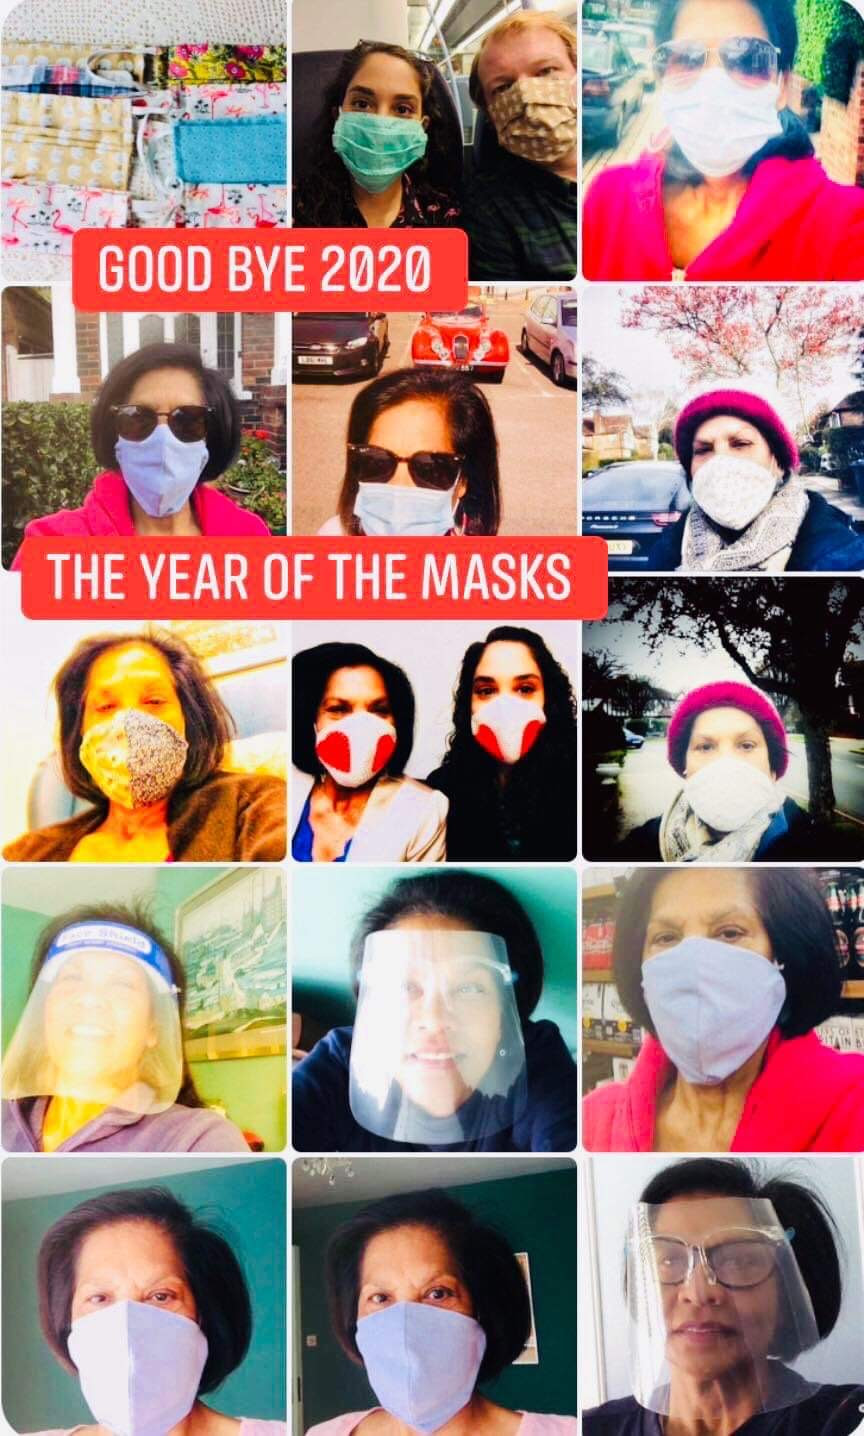 The Year of the Masks